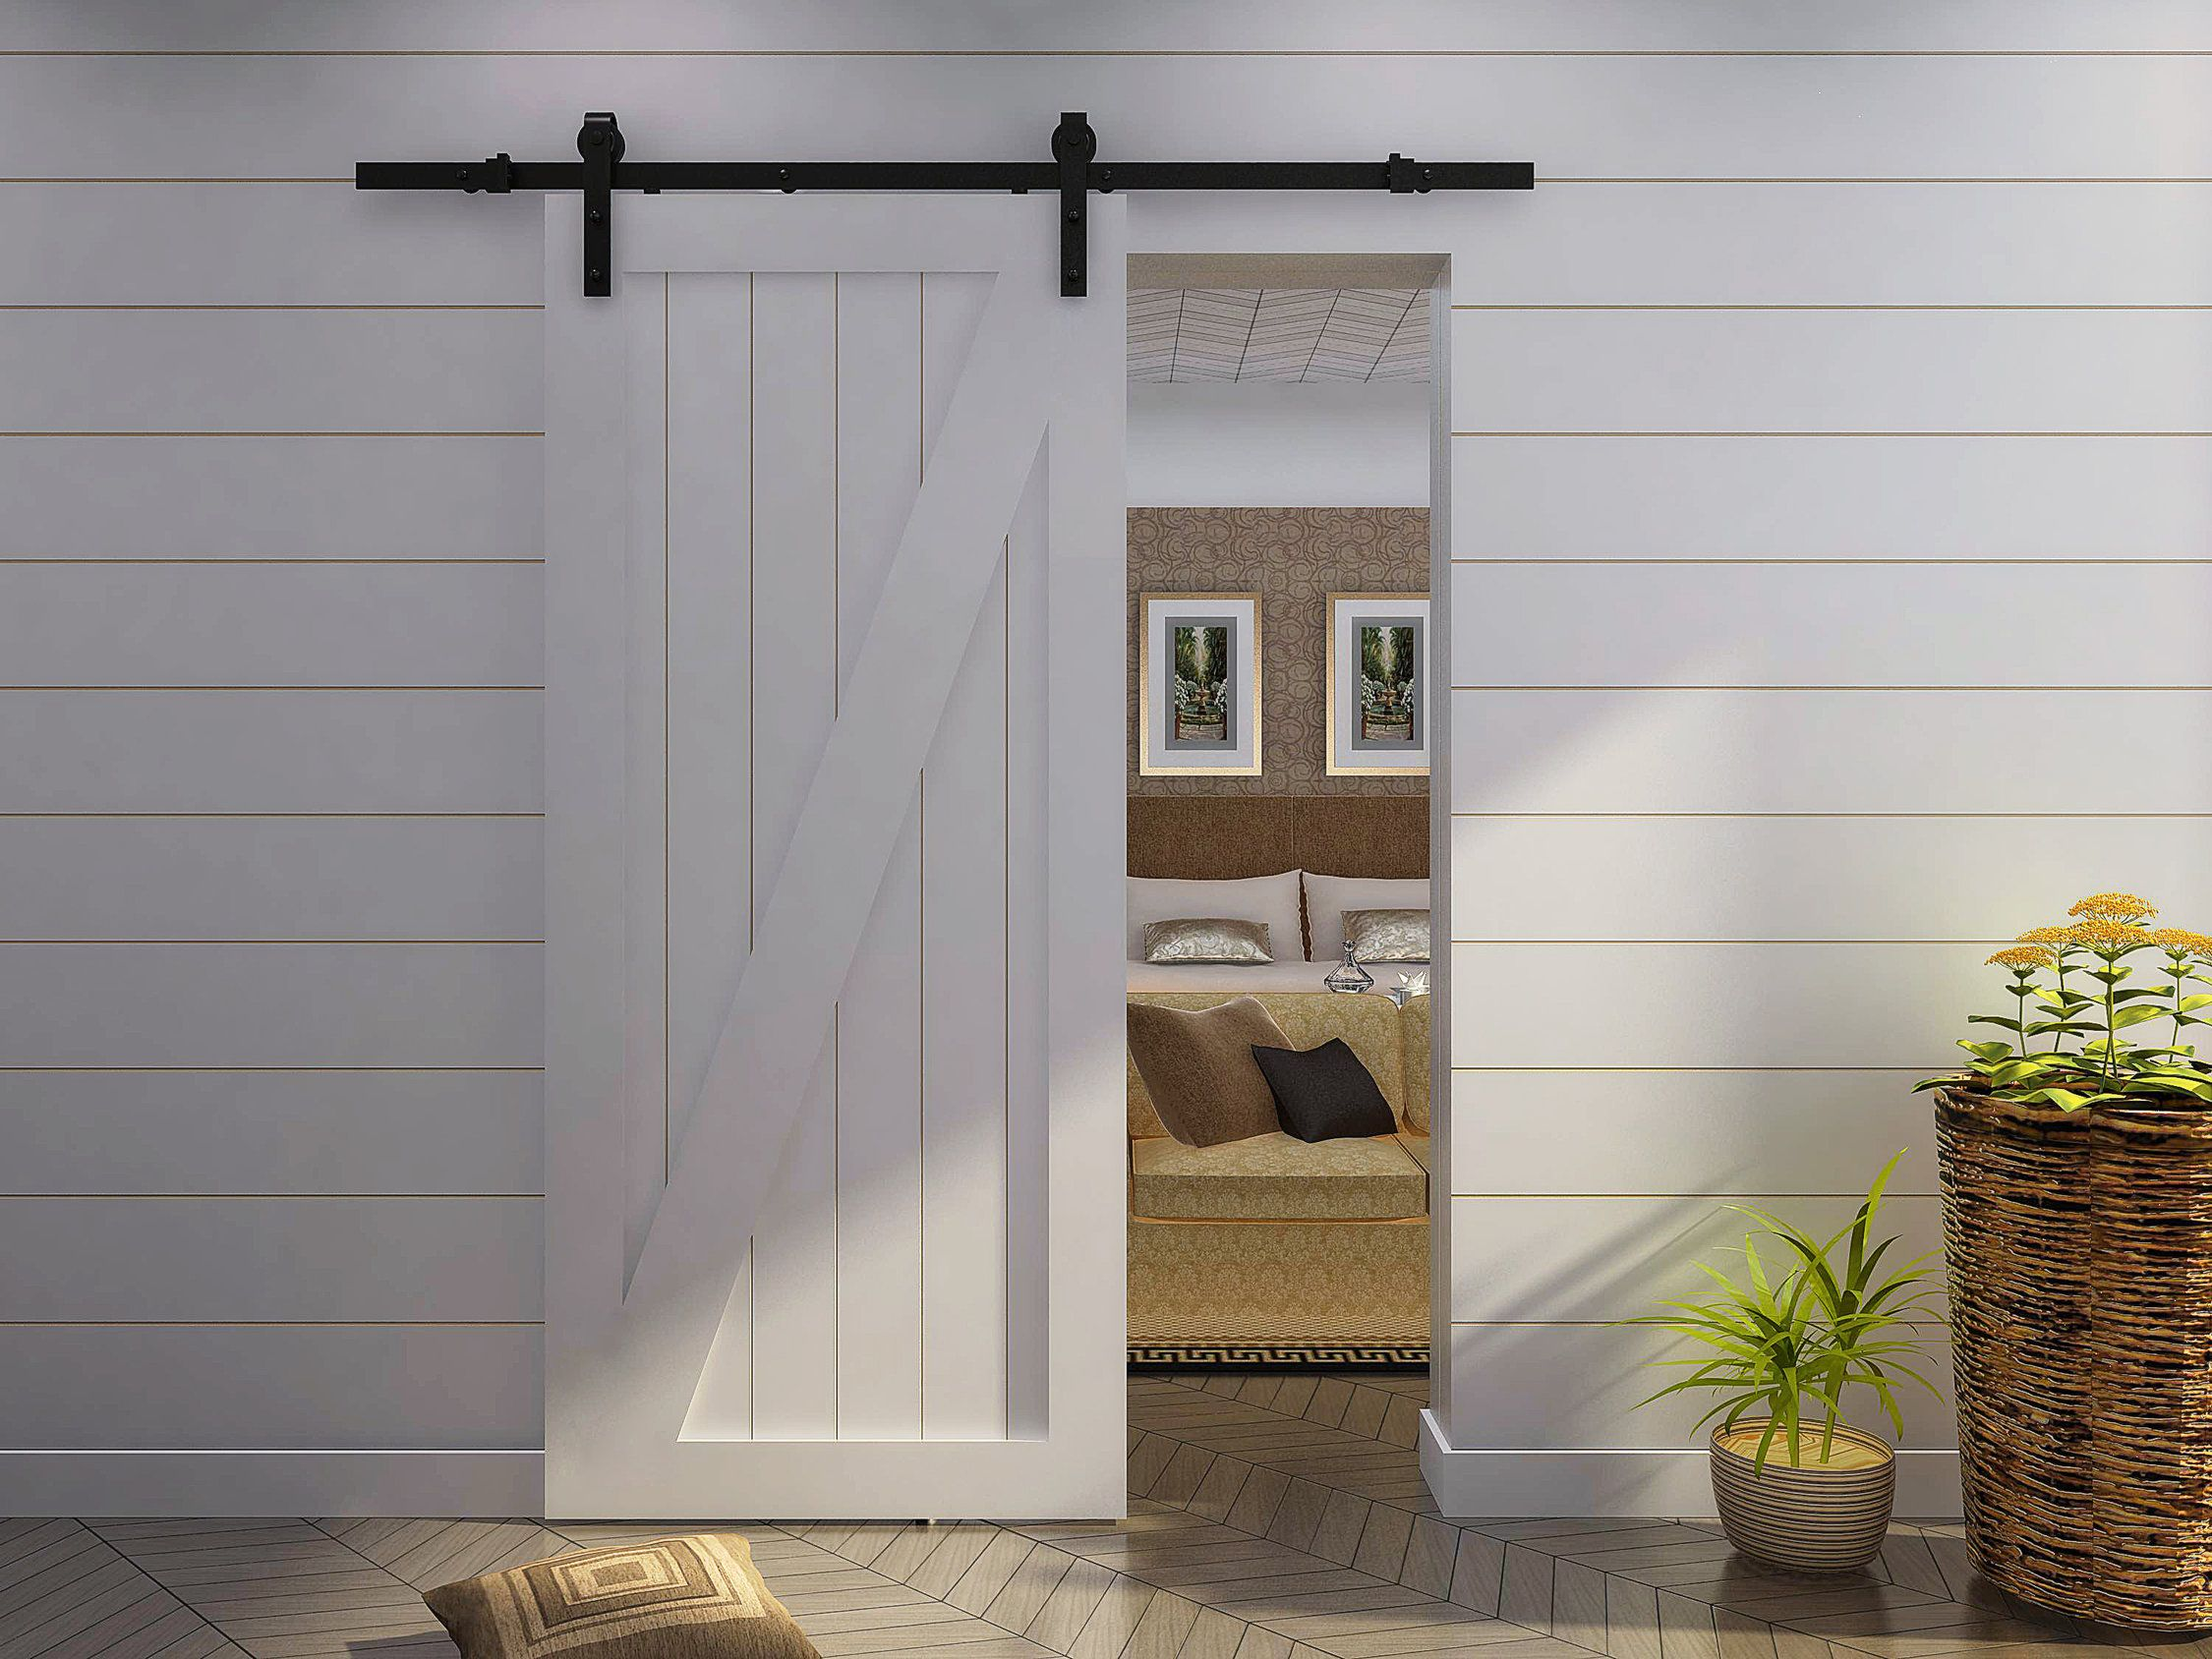 kits hardware dhgate kit modern track interior barn from wood product com sliding diyhd door black double hanging rustic steel